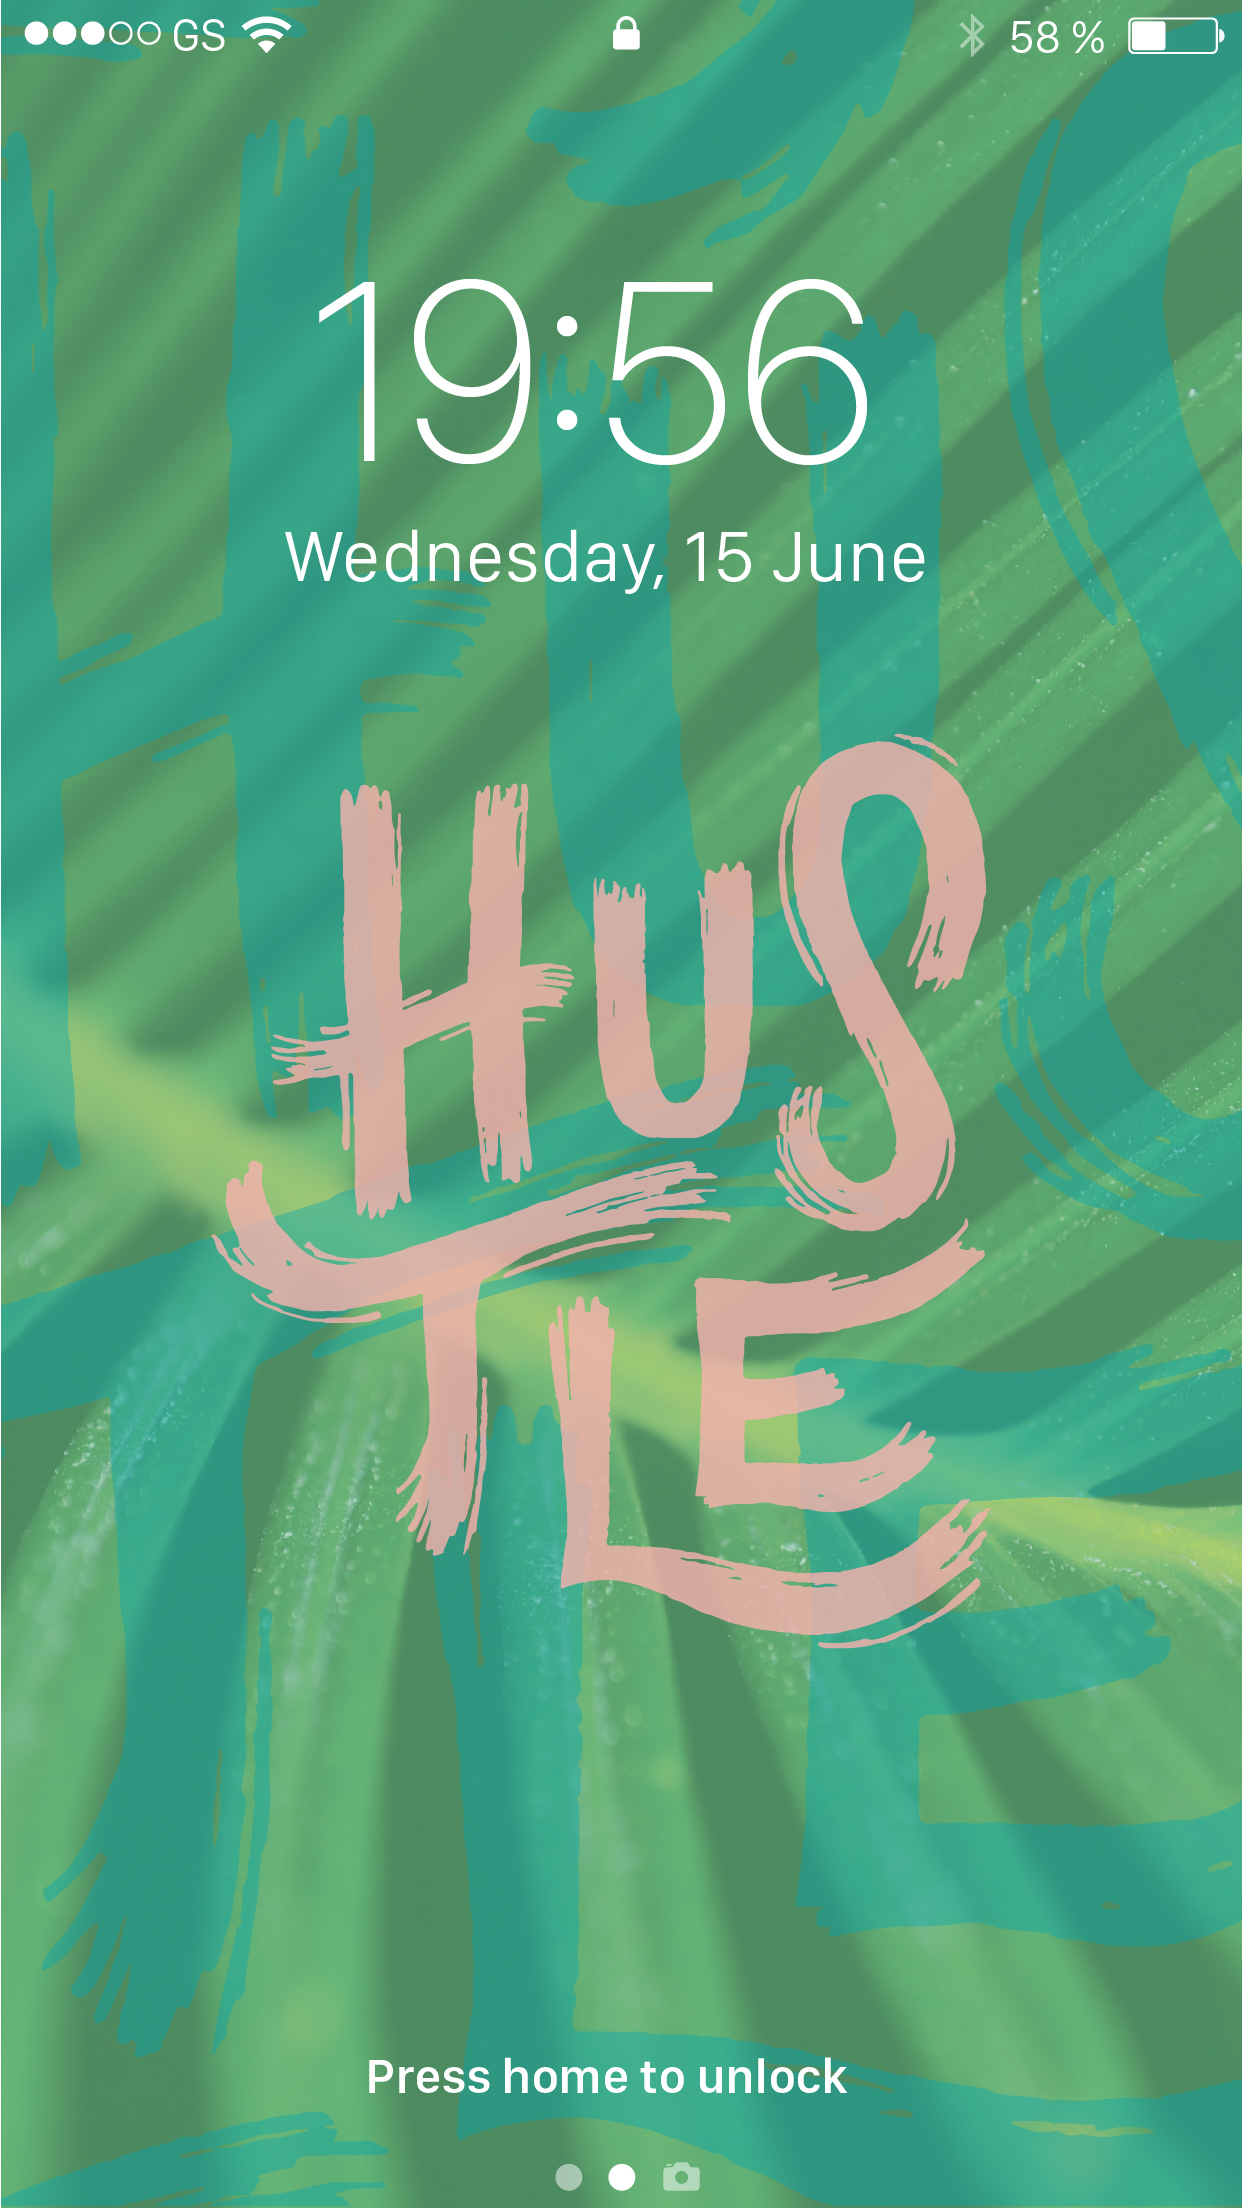 Hustle-Green_lock.jpg